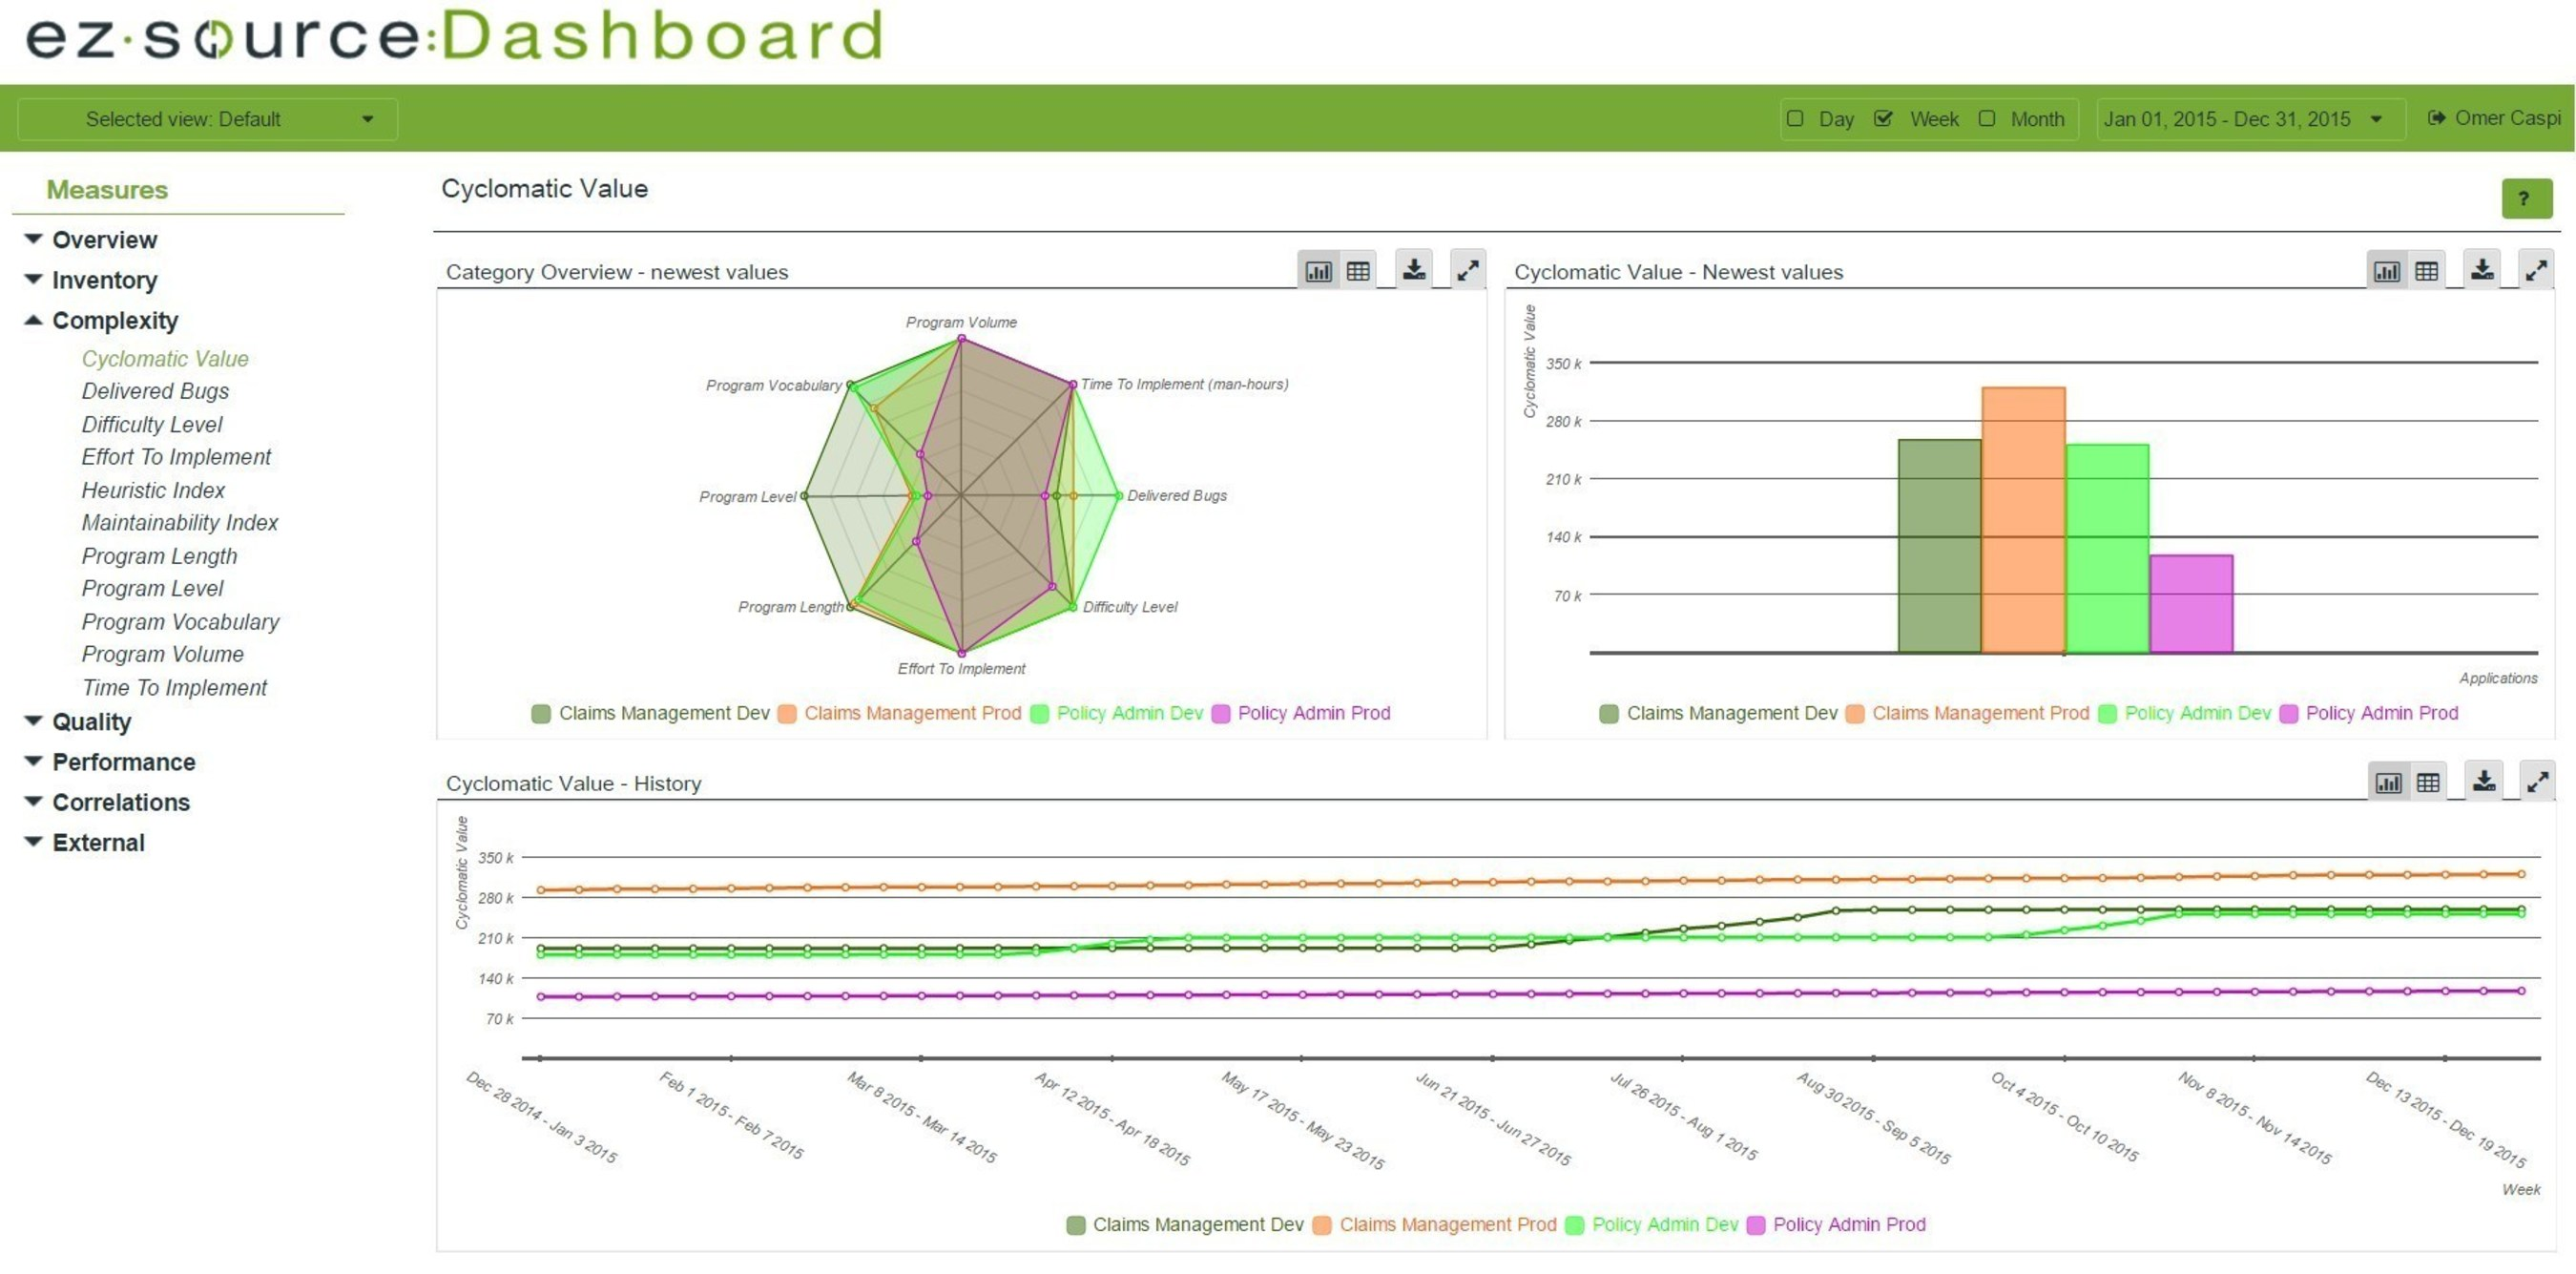 EZSource:Dashboard visualizes changes to mainframe application code to help developers more easily modify applications, expose APIs and more efficiently leverage development resources. IBM plans to acquire EZSource to make it easier for developers to modernize mainframe applications in the era of digital business and hybrid cloud.